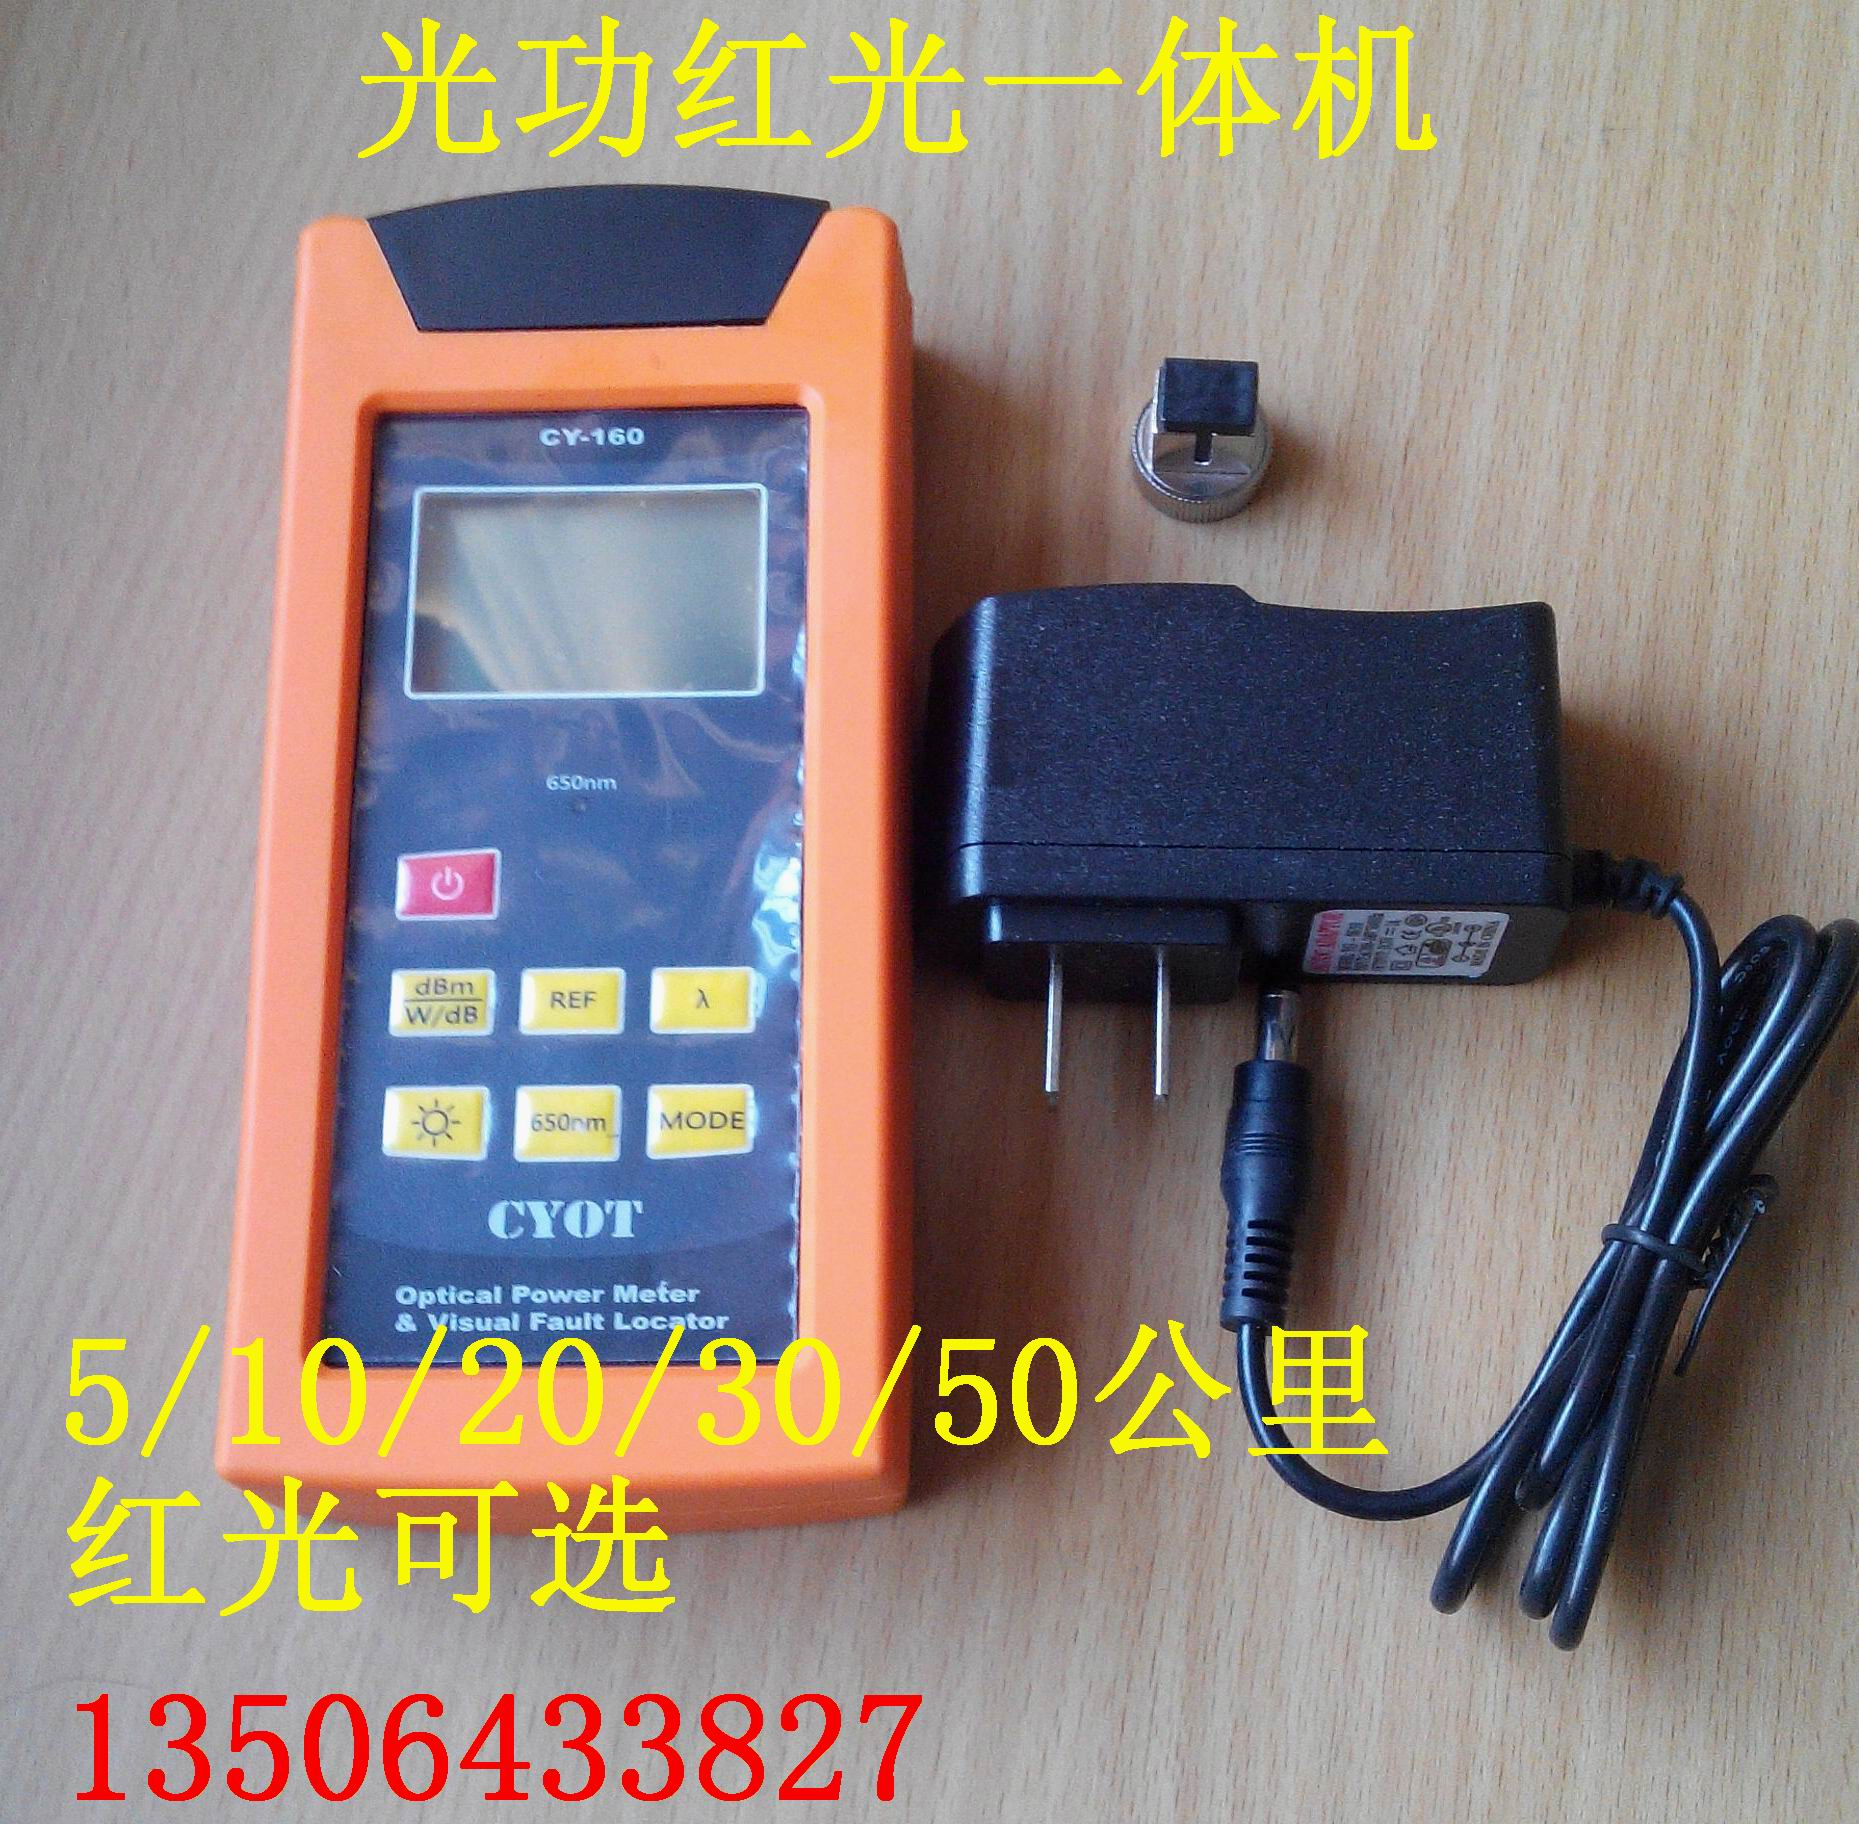 CY-160 optical power meter red light power red light machine-one 5 km 260 Yuan to send charger